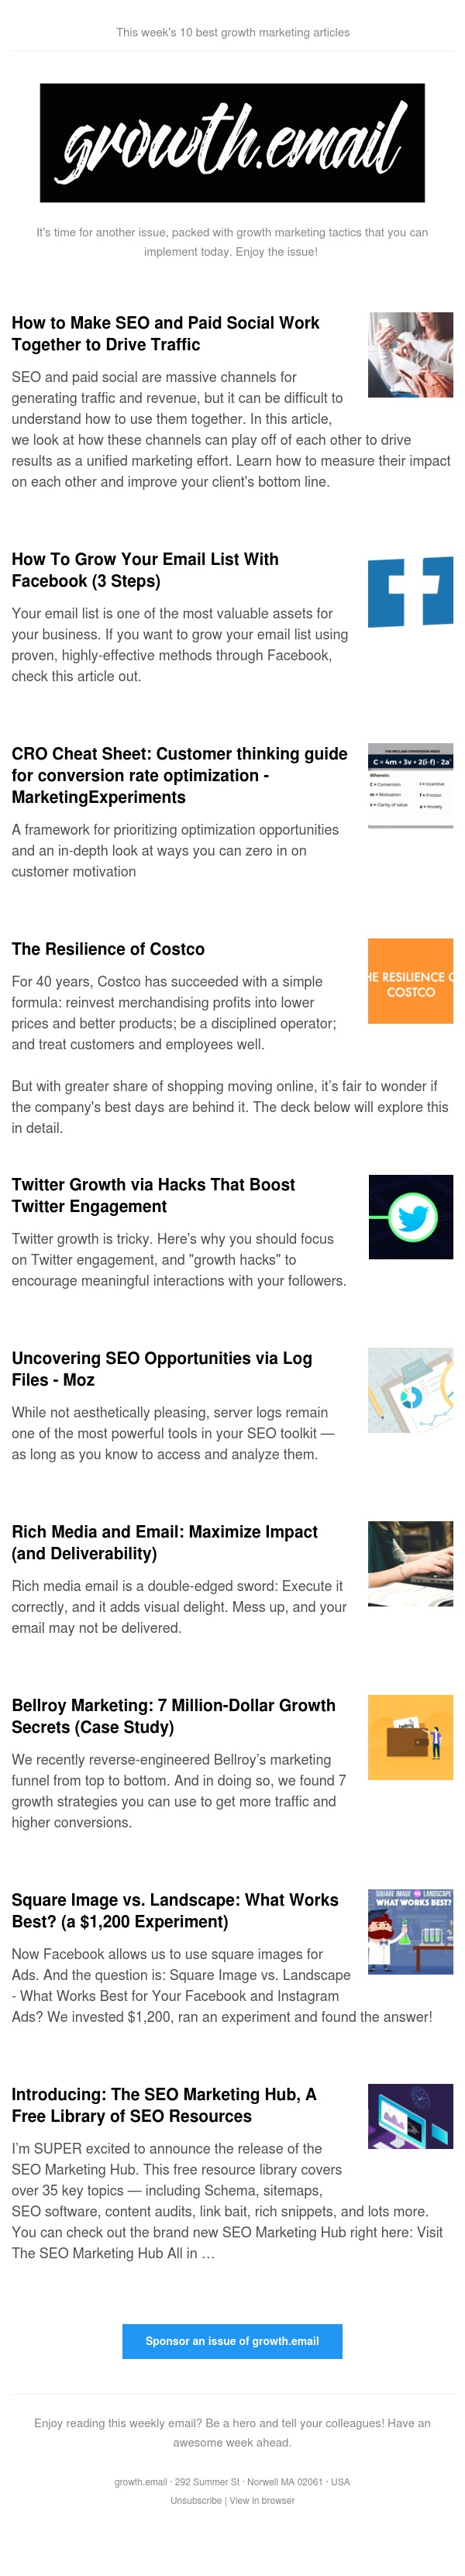 growth.email #88 Grow Your Email List With Facebook | CRO Cheat Sheet | Twitter Growth Hacks | 7 Million-Dollar Growth Secrets